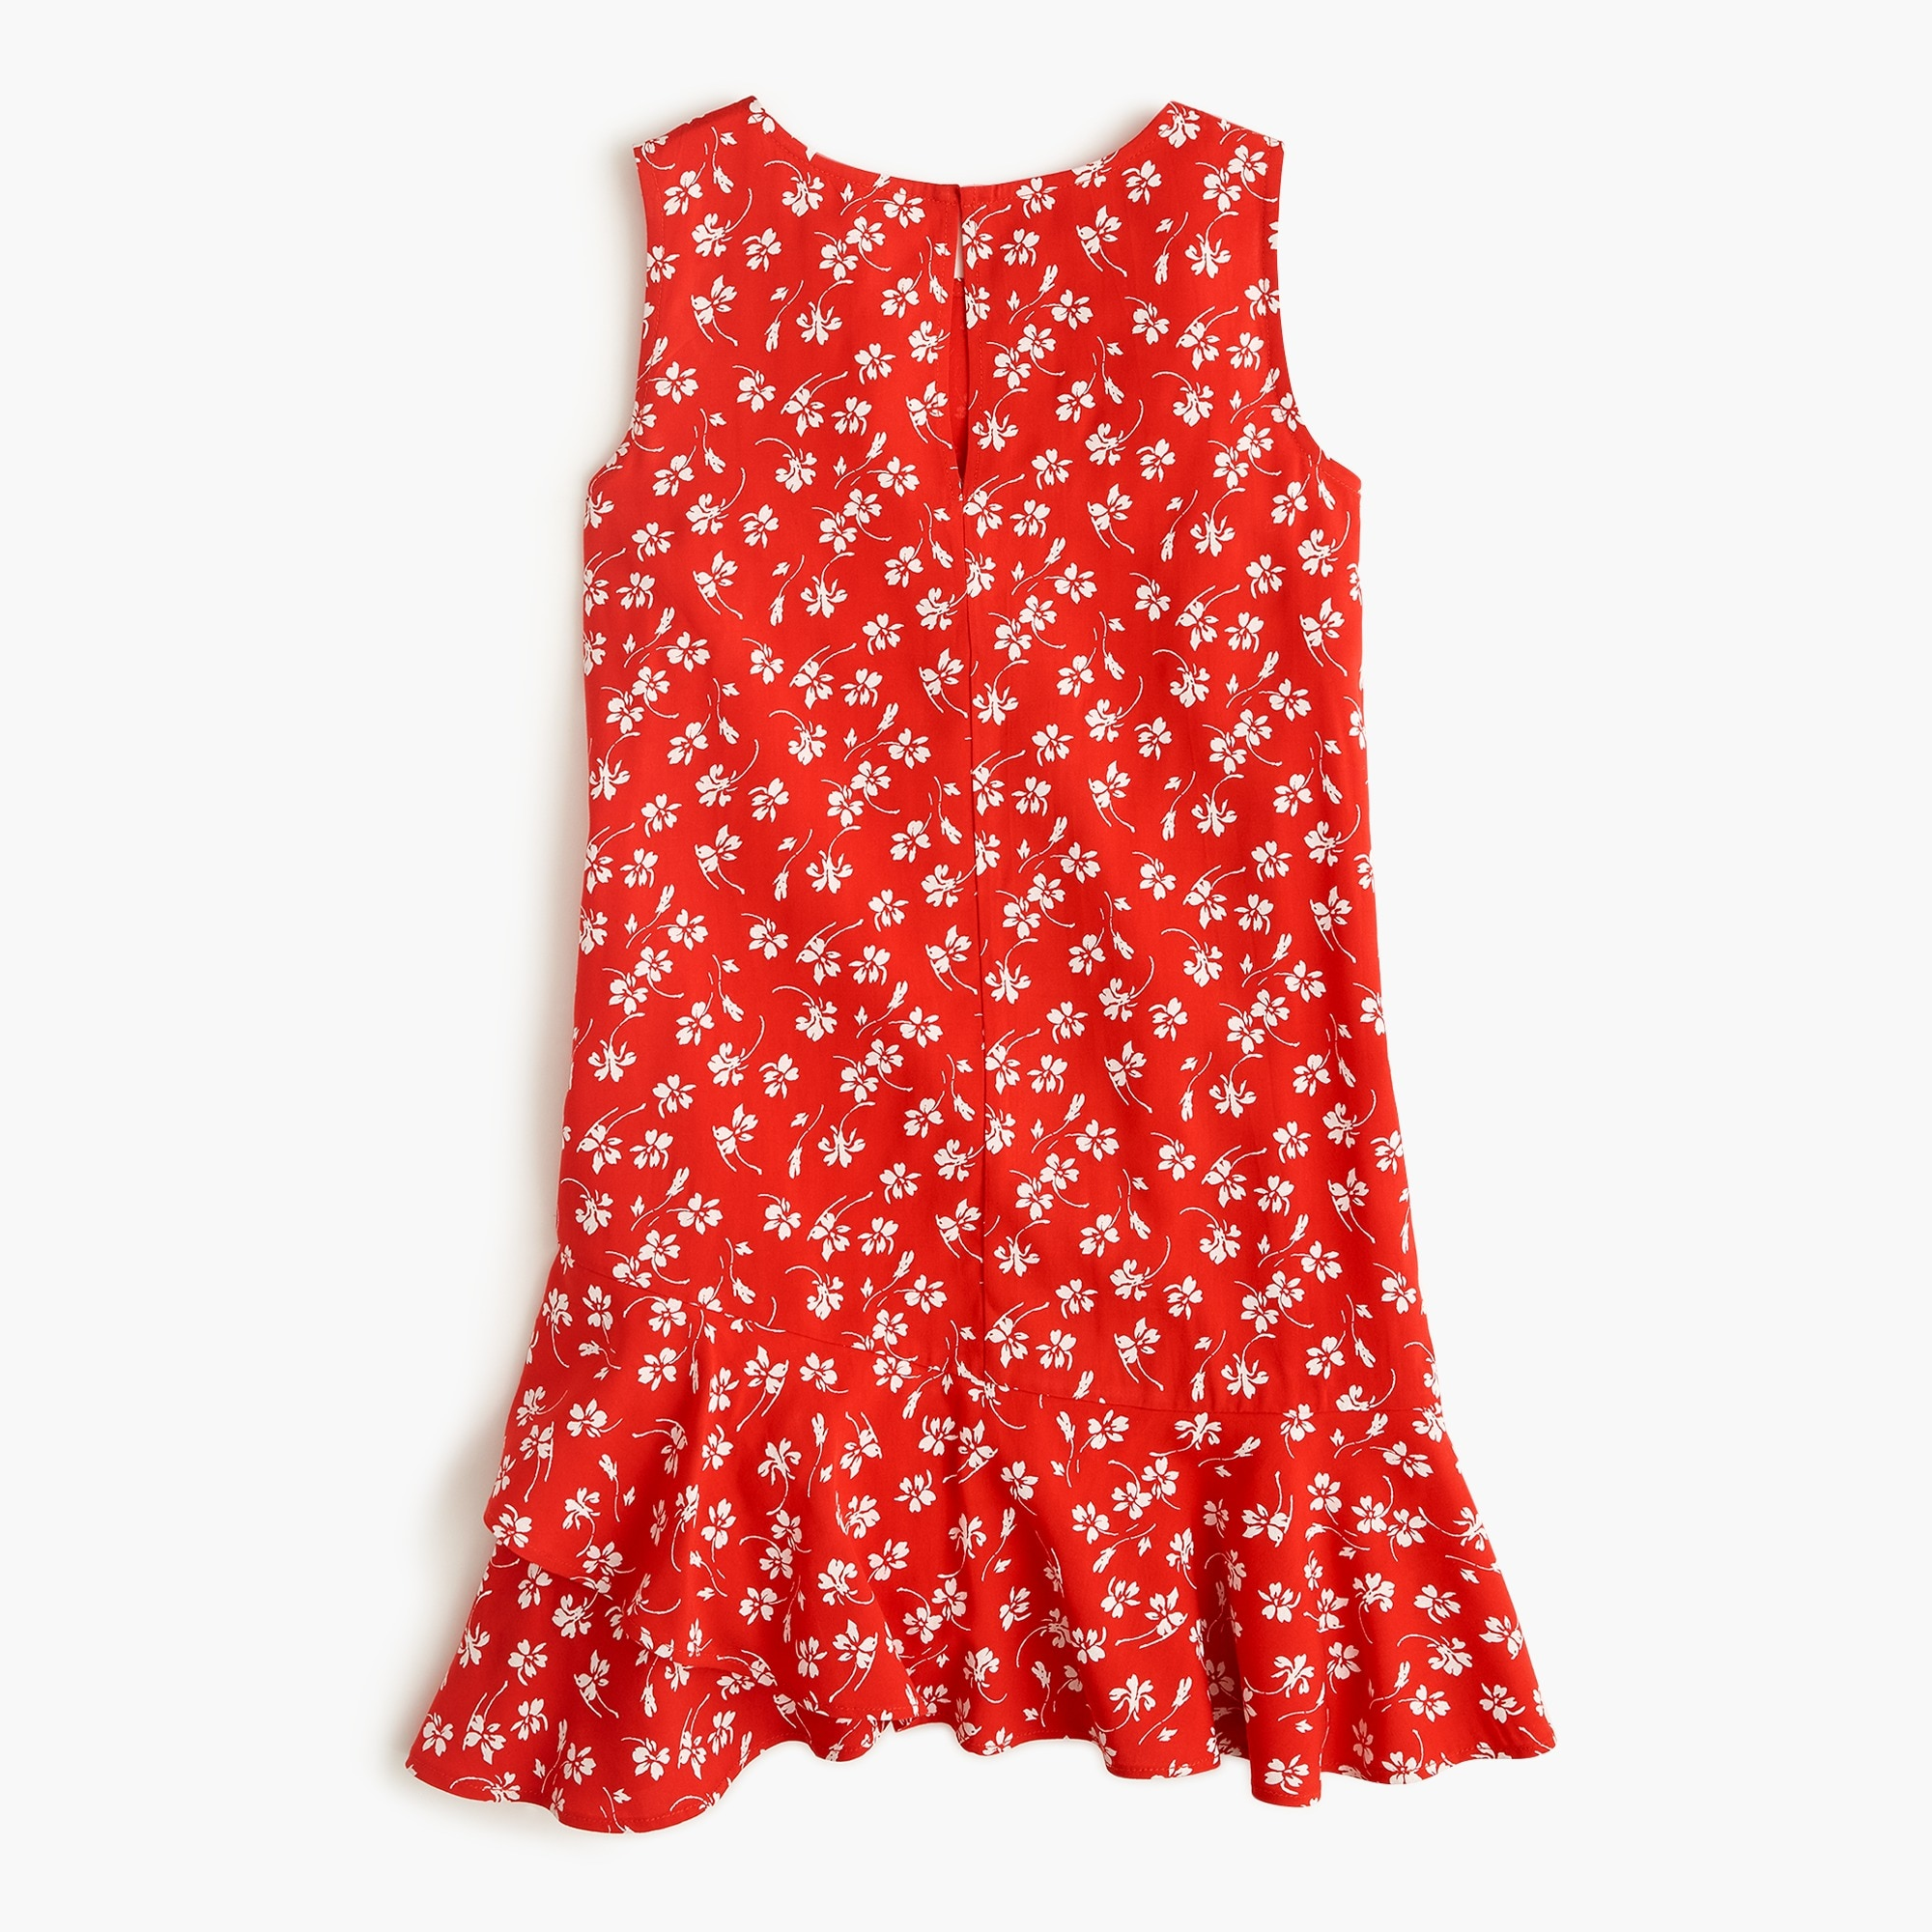 Image 2 for Girls' ruffle-hem dress in fresh daisies